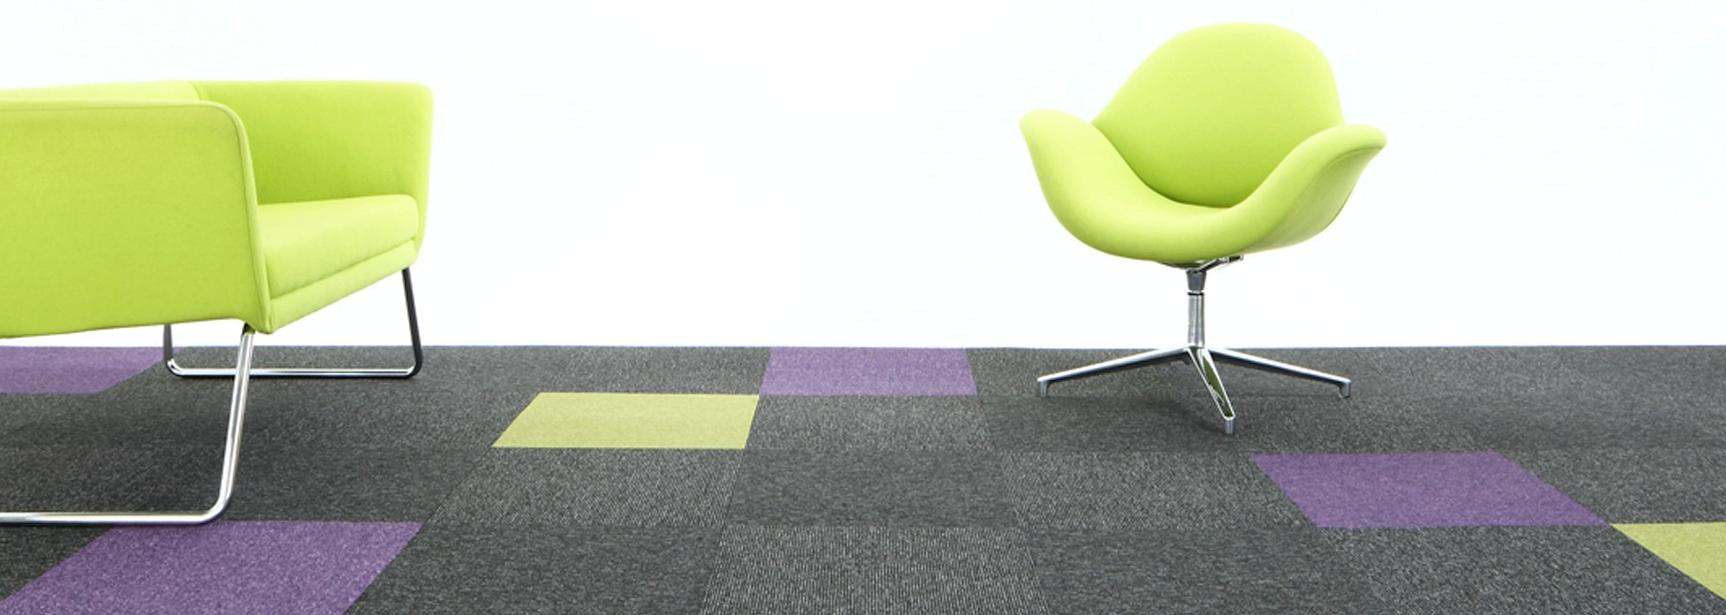 carpet upholstery cleaning in los angeles ca